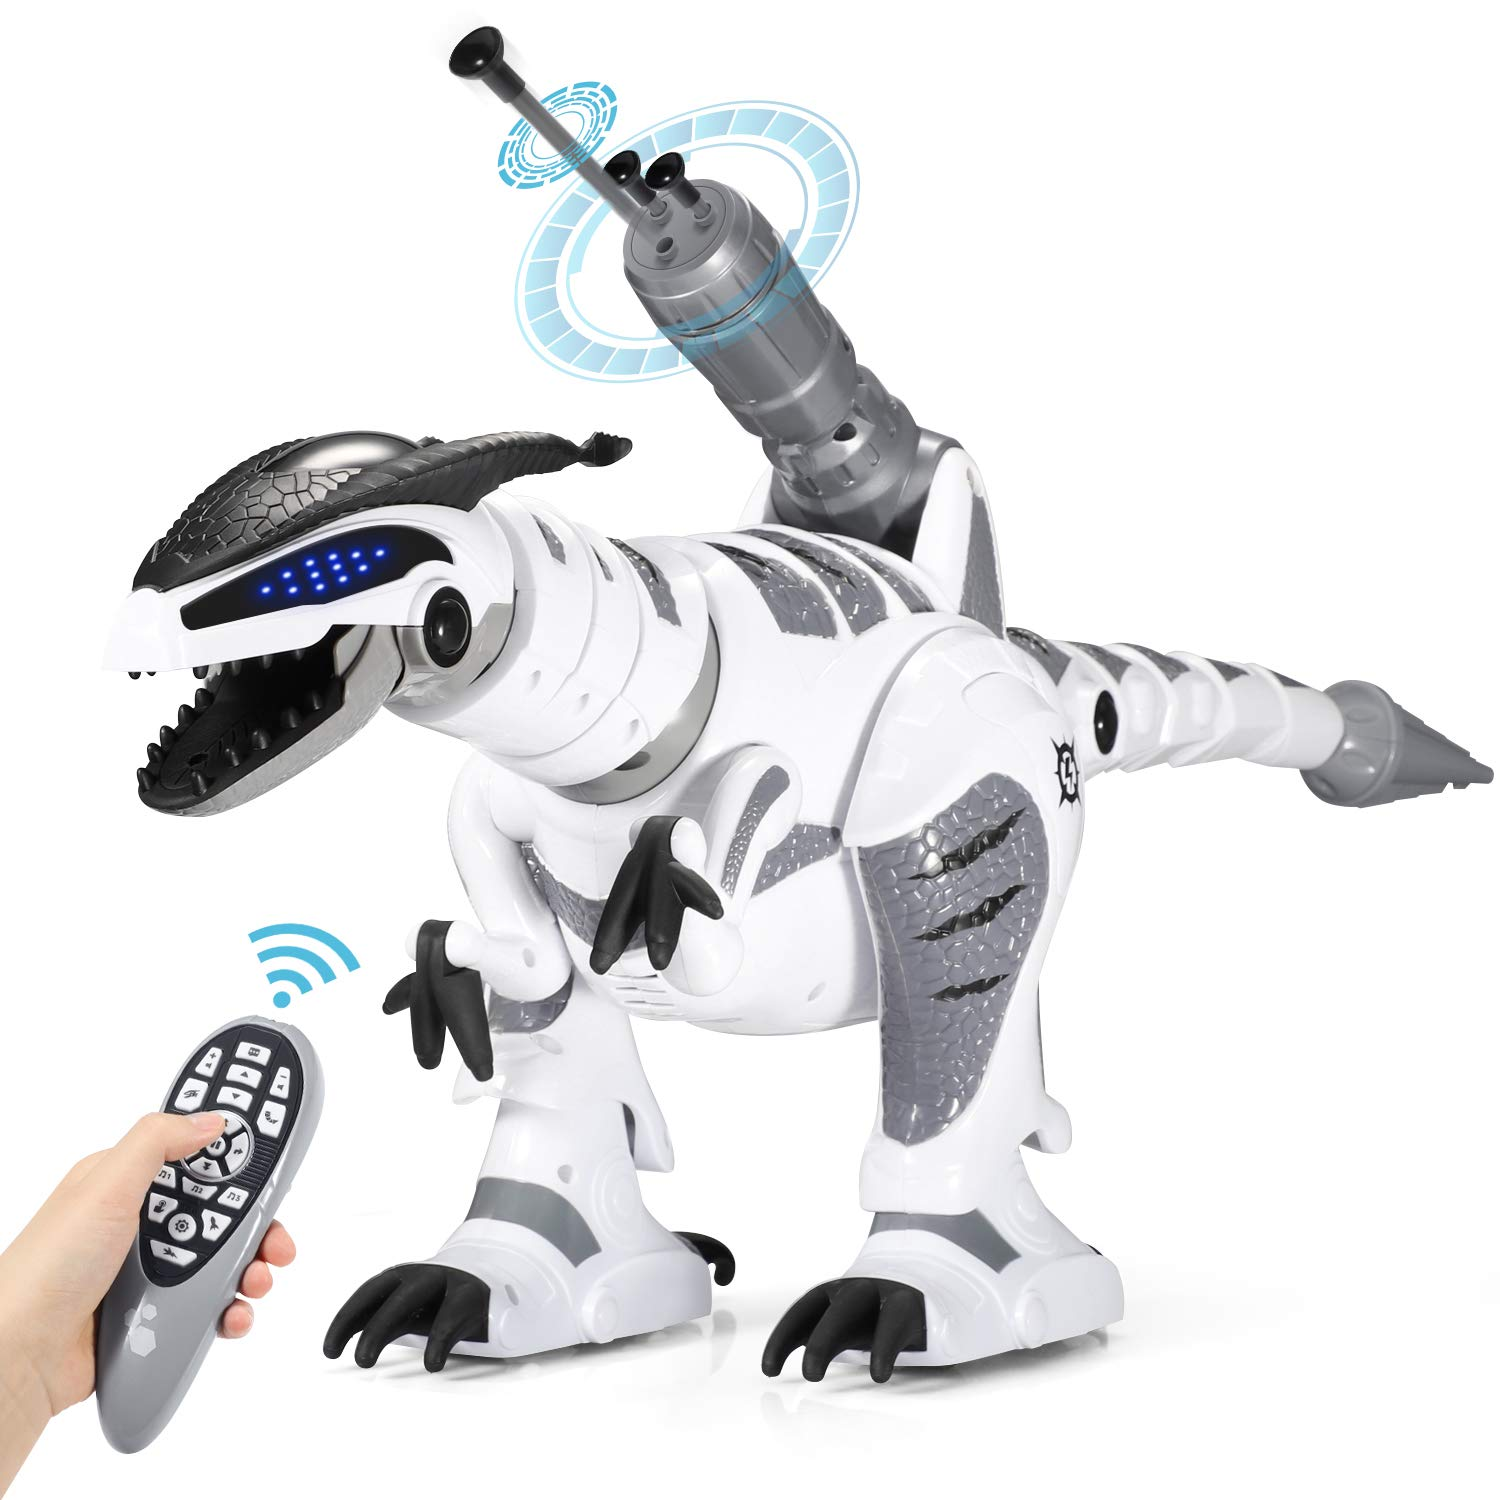 SGILE RC Dinosaur Robot Toy, Smart Programmable Interactive Walk Sing Dance for Kids Gift Present by SGILE (Image #1)